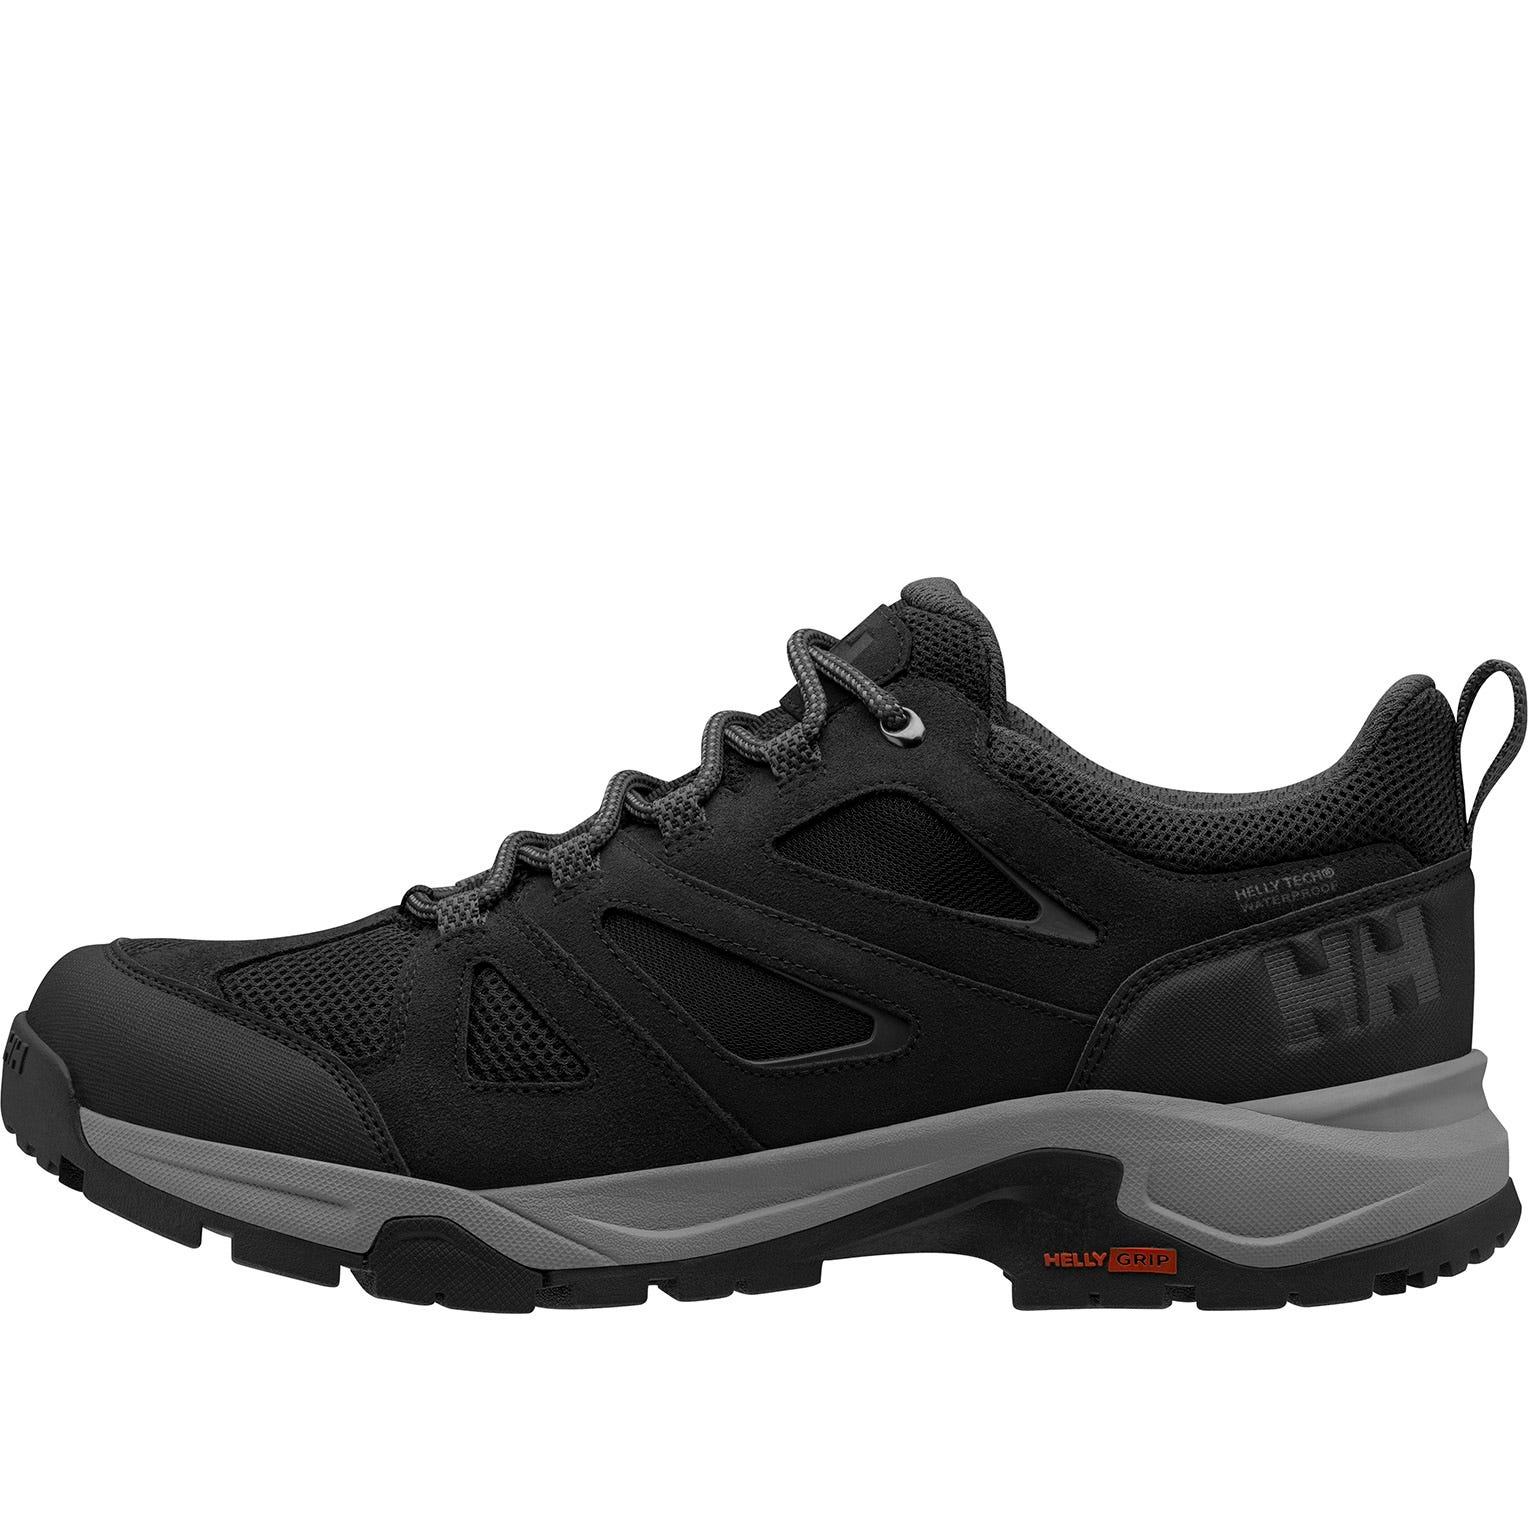 Helly Hansen Mens Switchback Trail Low Ht Hiking Boot Black 7.5